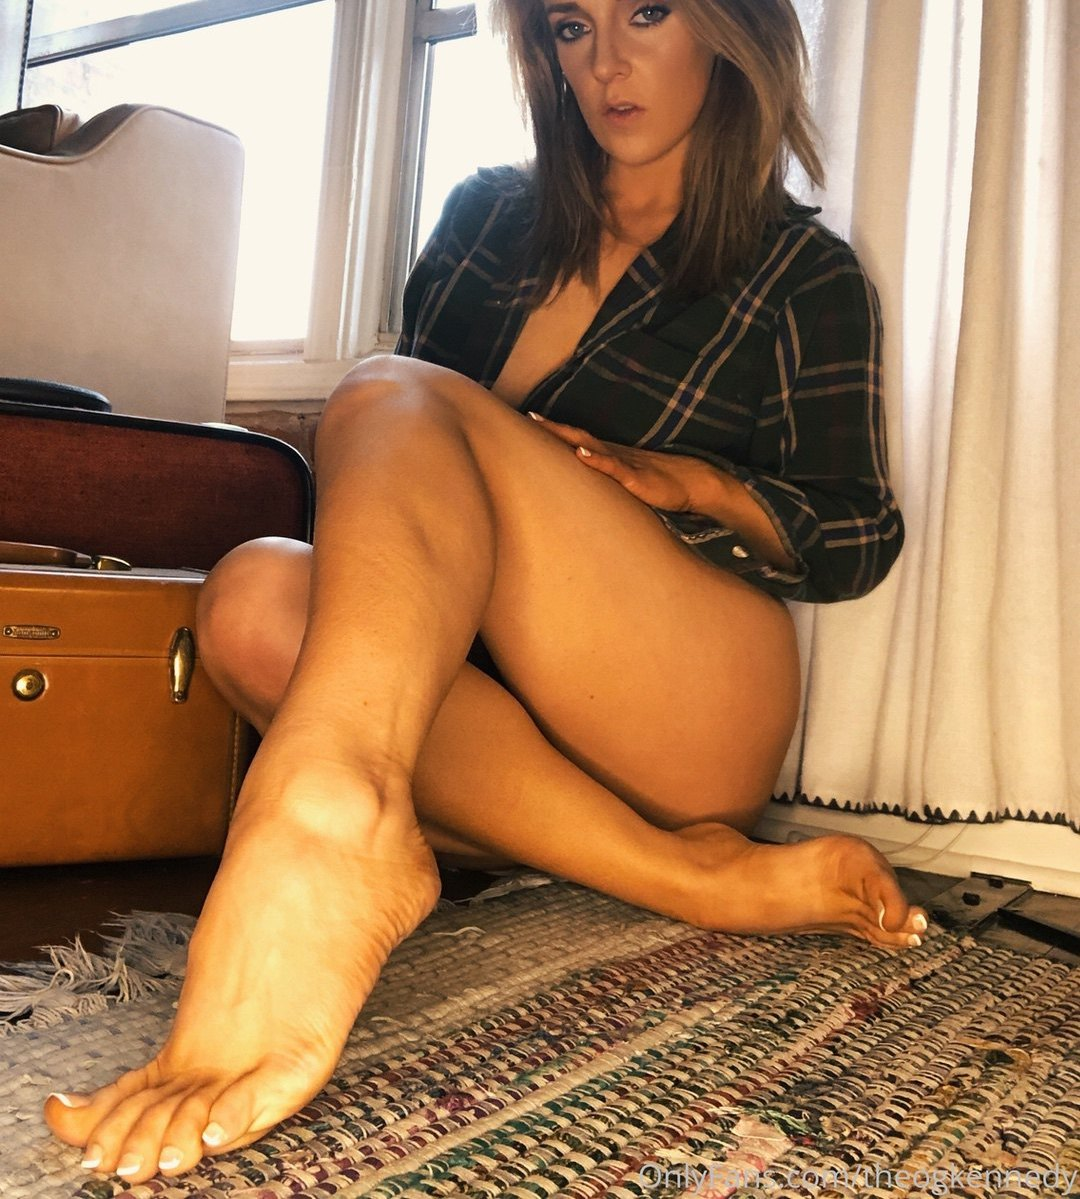 Kate Kennedy Theogkennedy Onlyfans Nudes Leaks 0001